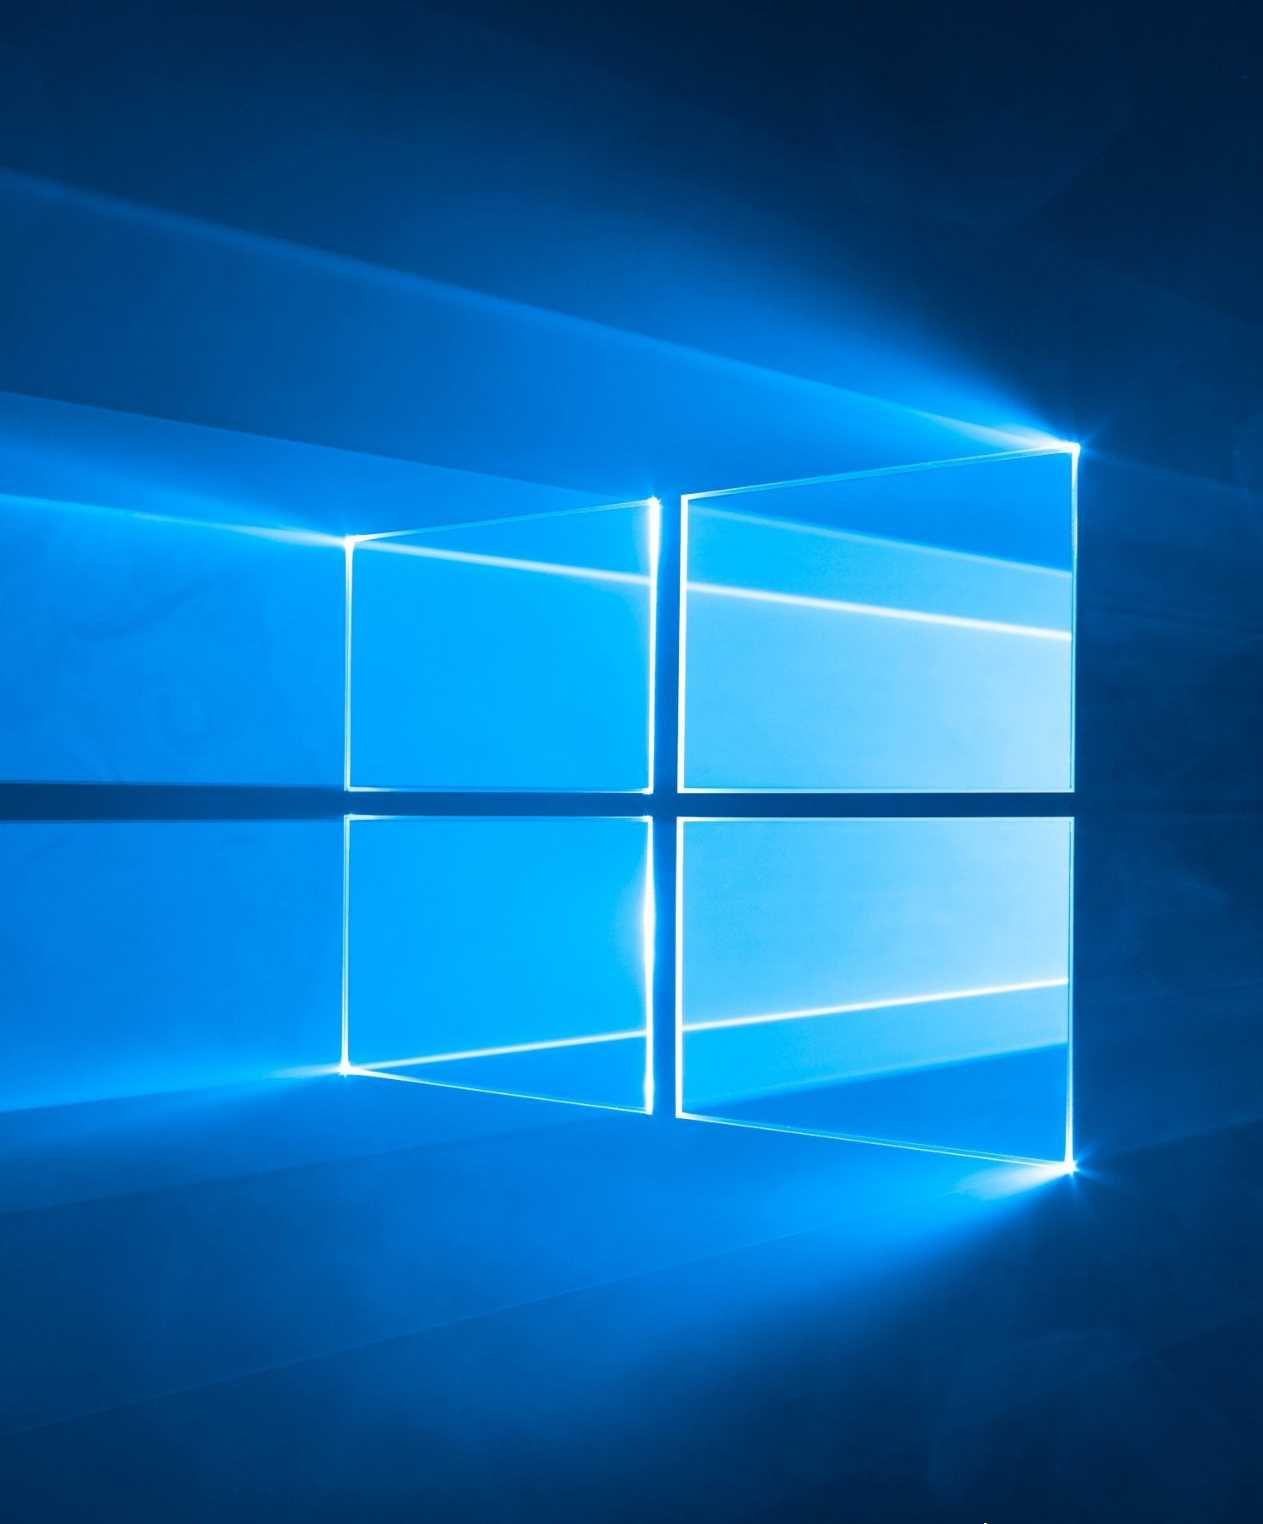 Windows 10 Terms Of Service Takes Stance On Video Game Piracy | Piracy